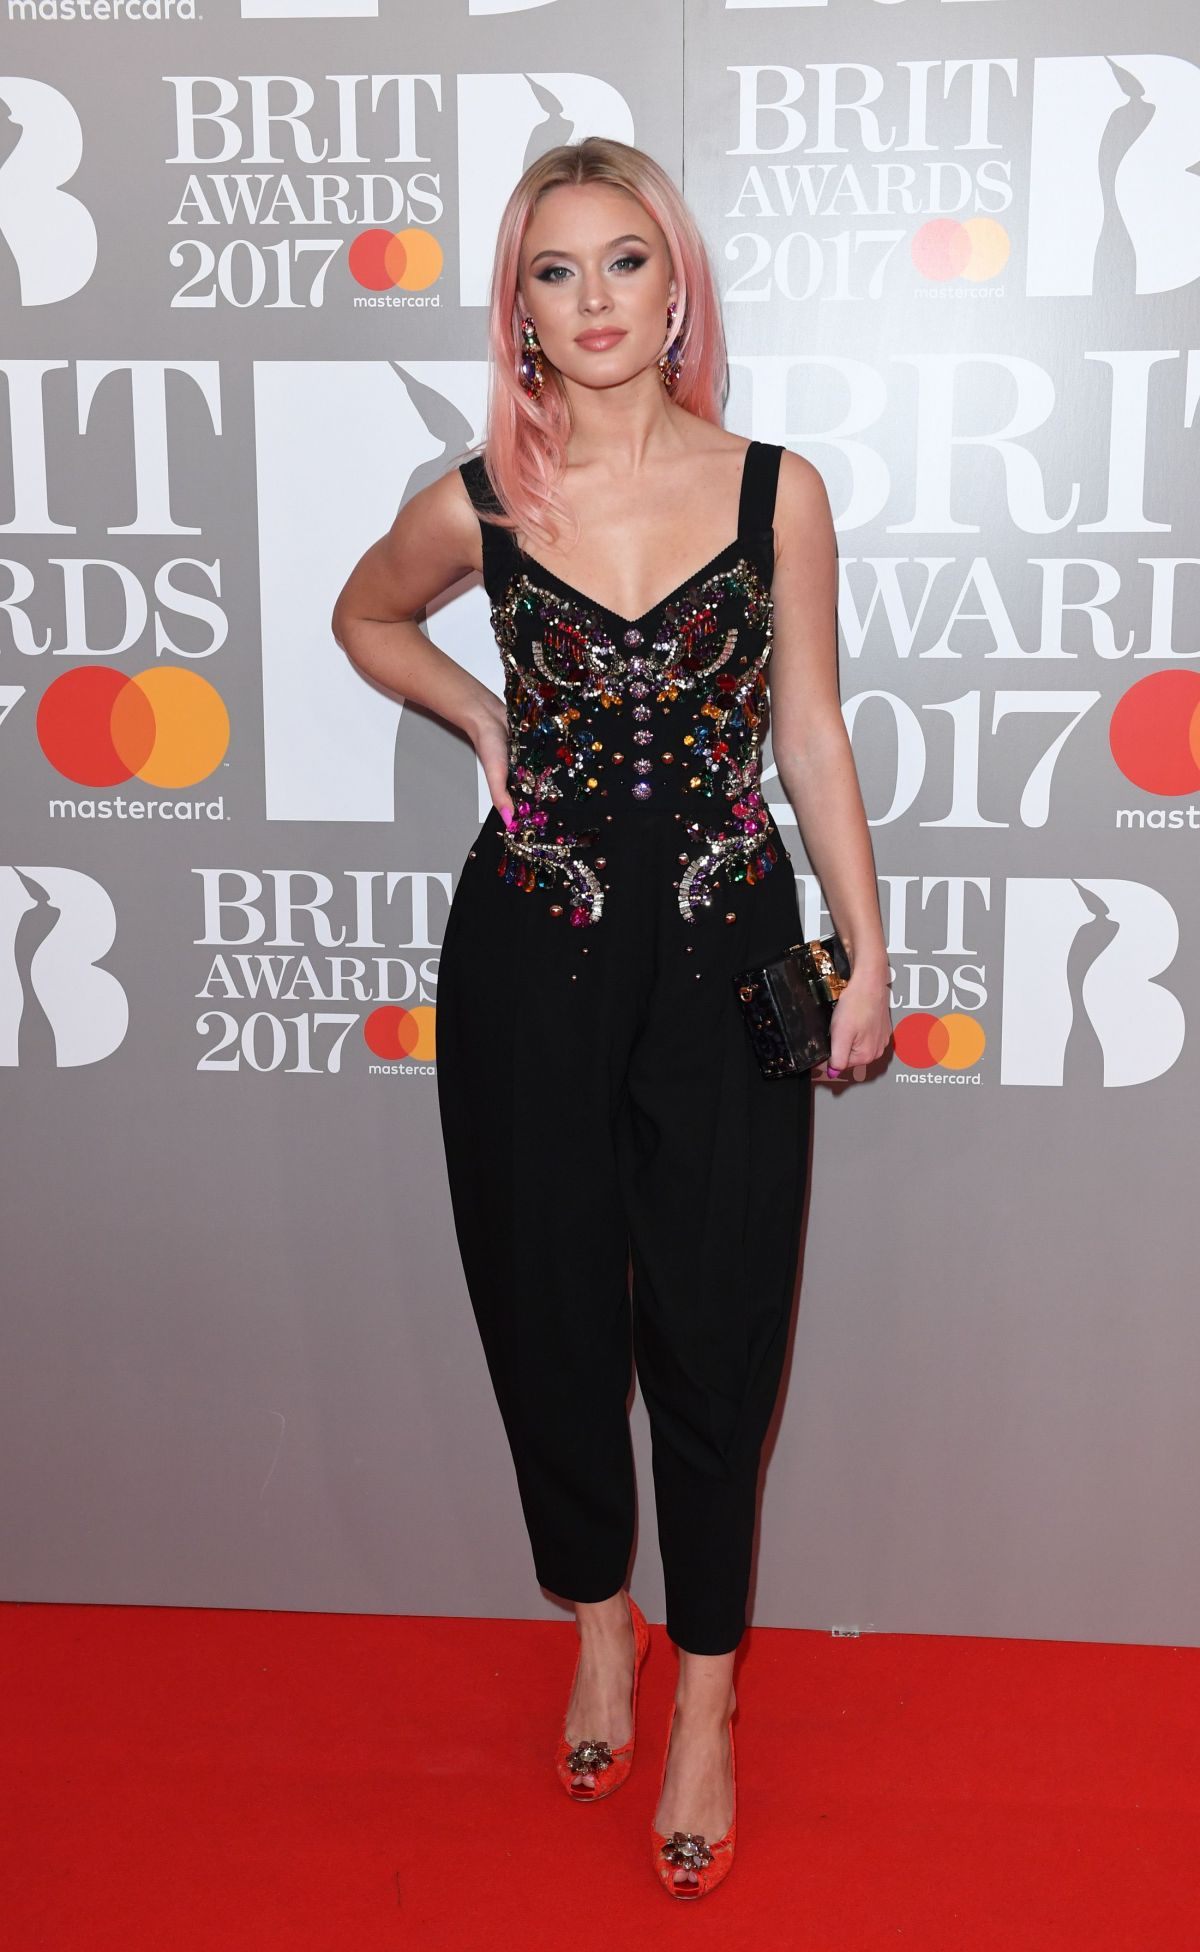 ¿Cuánto mide Zara Larsson? - Real height Zara-larsson-at-the-brit-awards-in-london_1